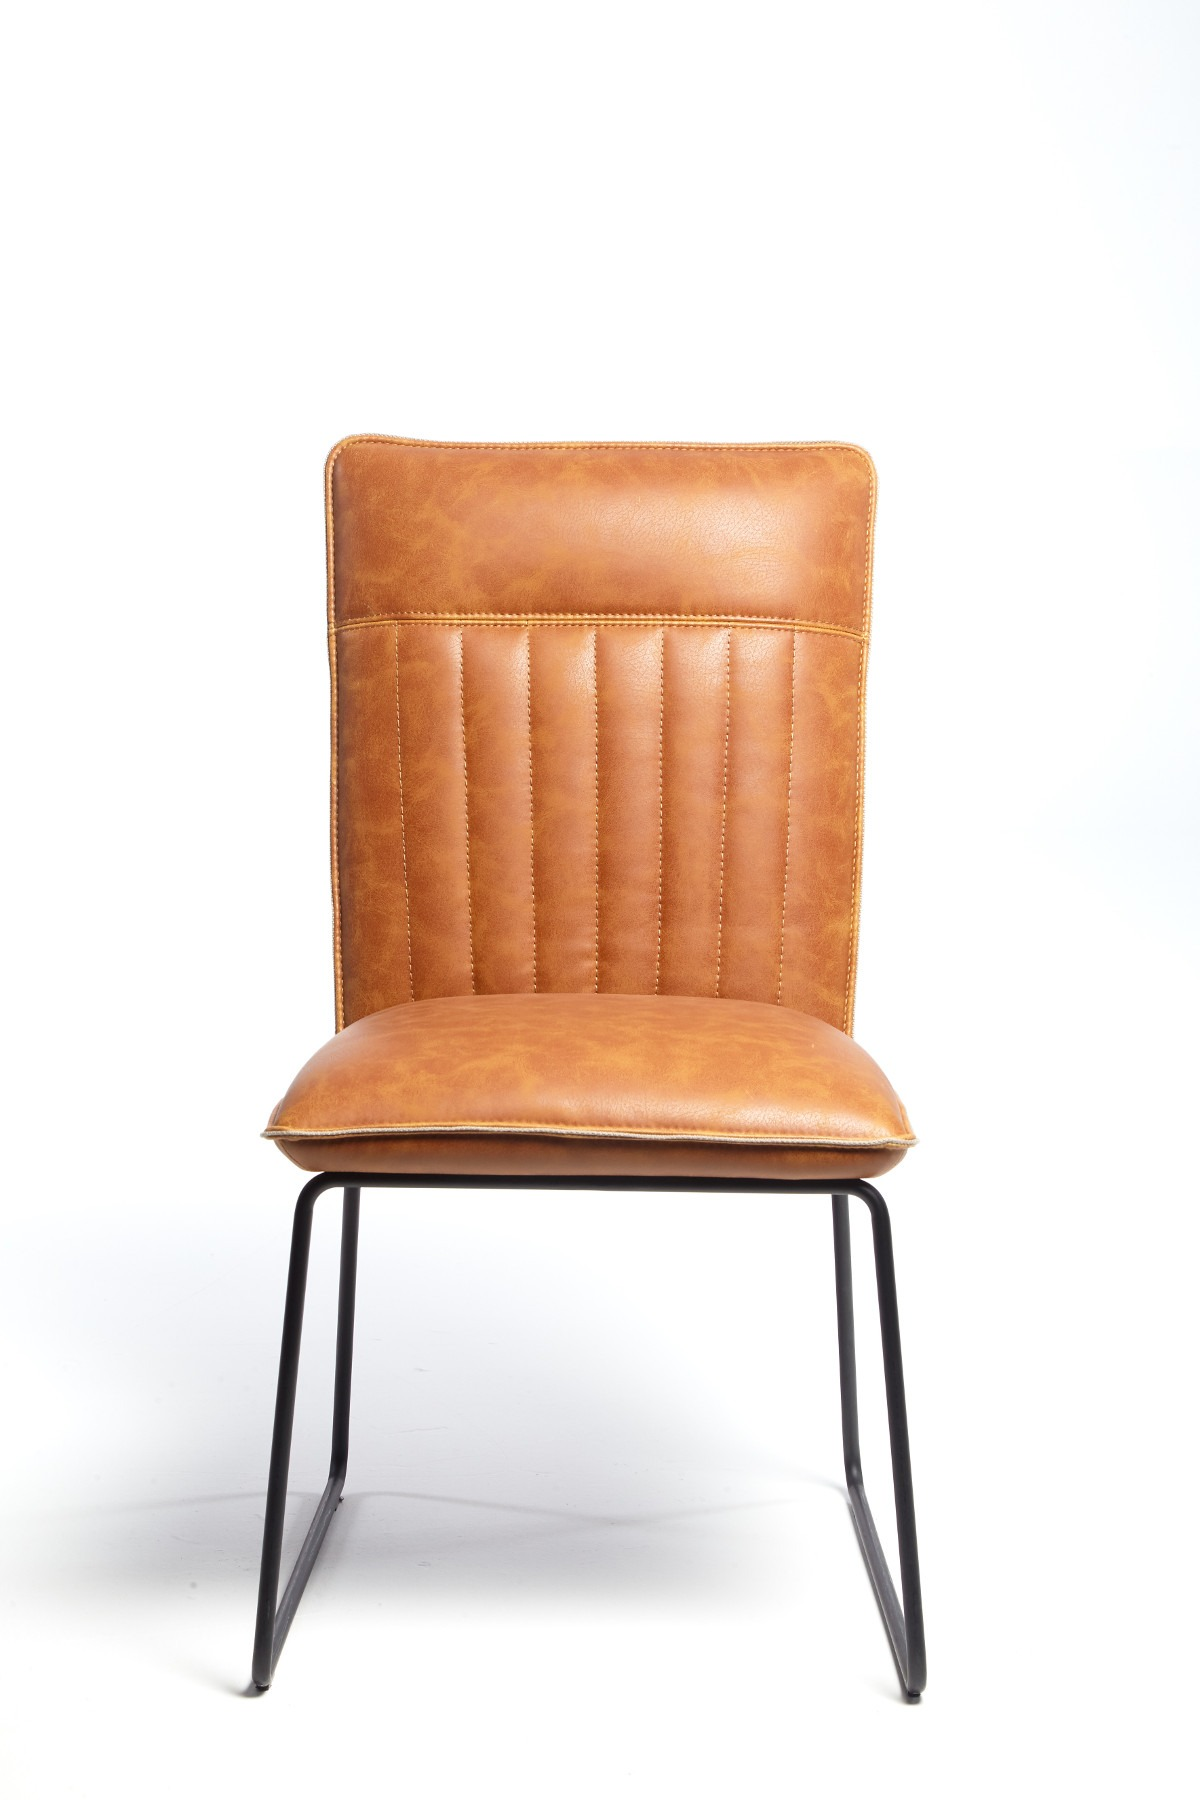 METRO TAN DINING CHAIR - FRONT VIEW